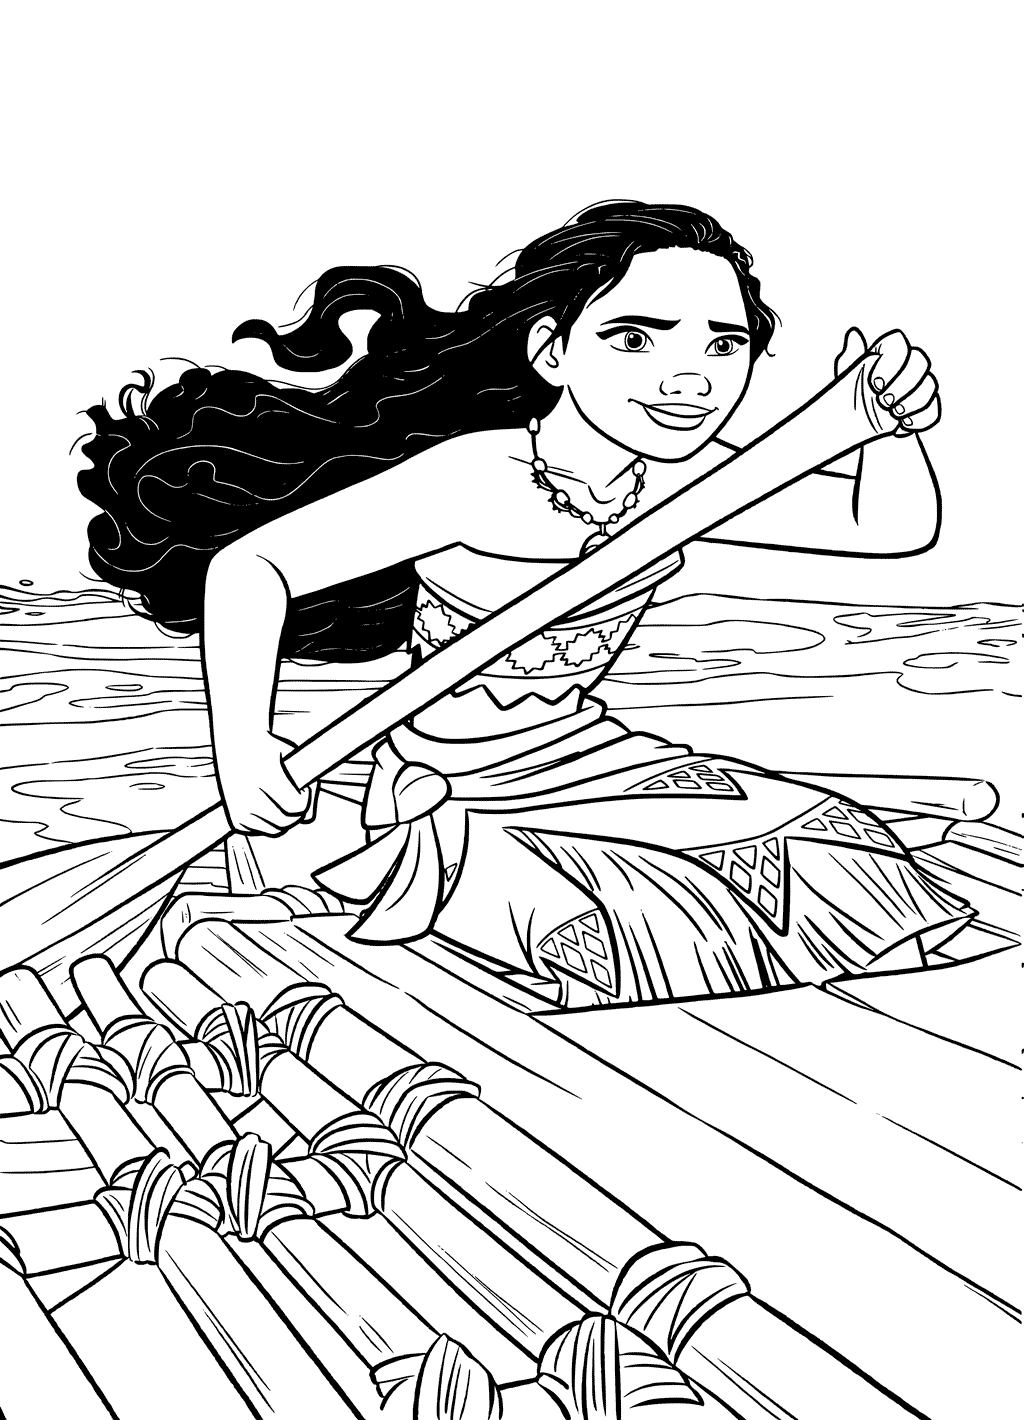 Top 10 Moana Coloring Pages- Free Printables | Free Coloring Pages - Moana Coloring Pages Free Printable